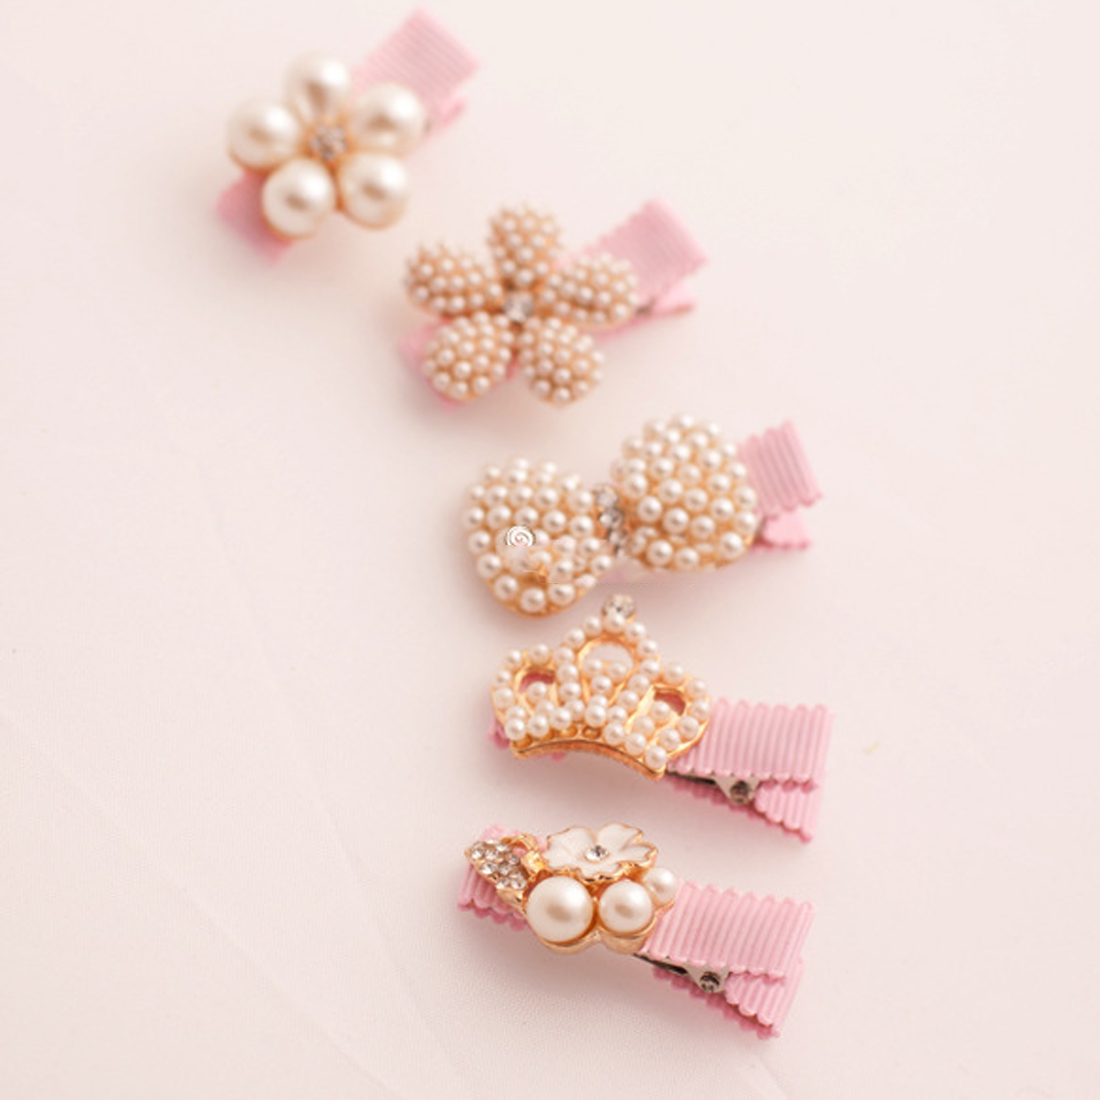 Baby Hair Clips Crown Pearls Hairpins Children Hair Accessories Protect Well Wrapped Bow With Pearls Princess Hairpins 1pcs children hair clips crown pearls baby hairpins hair accessories pearl bows princess hairpins girls headwear kids headdress